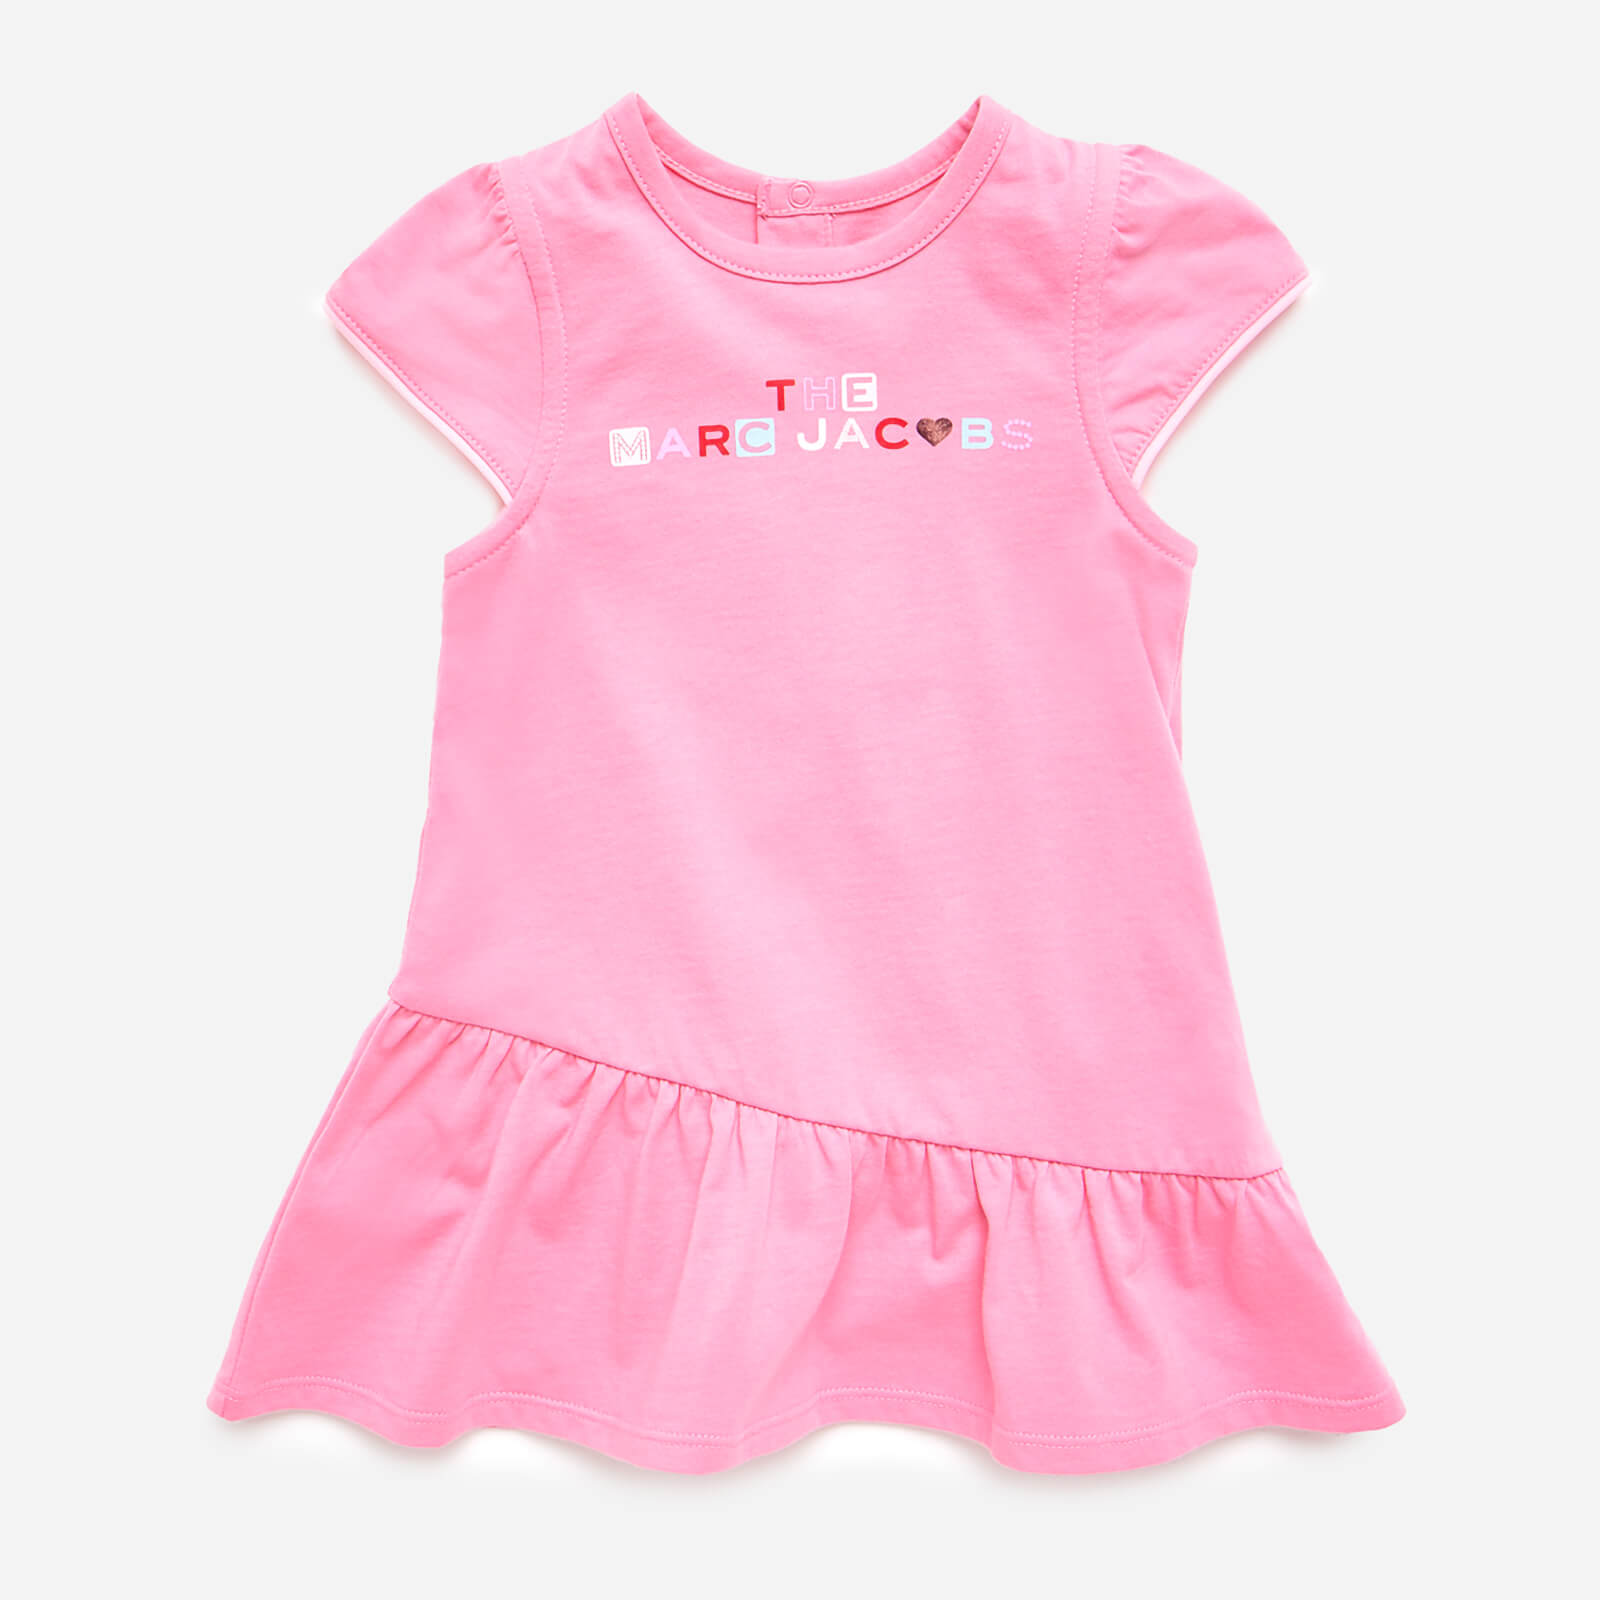 The Marc Jacobs Baby Girls' Frill Dress - Pink - 0-3 months